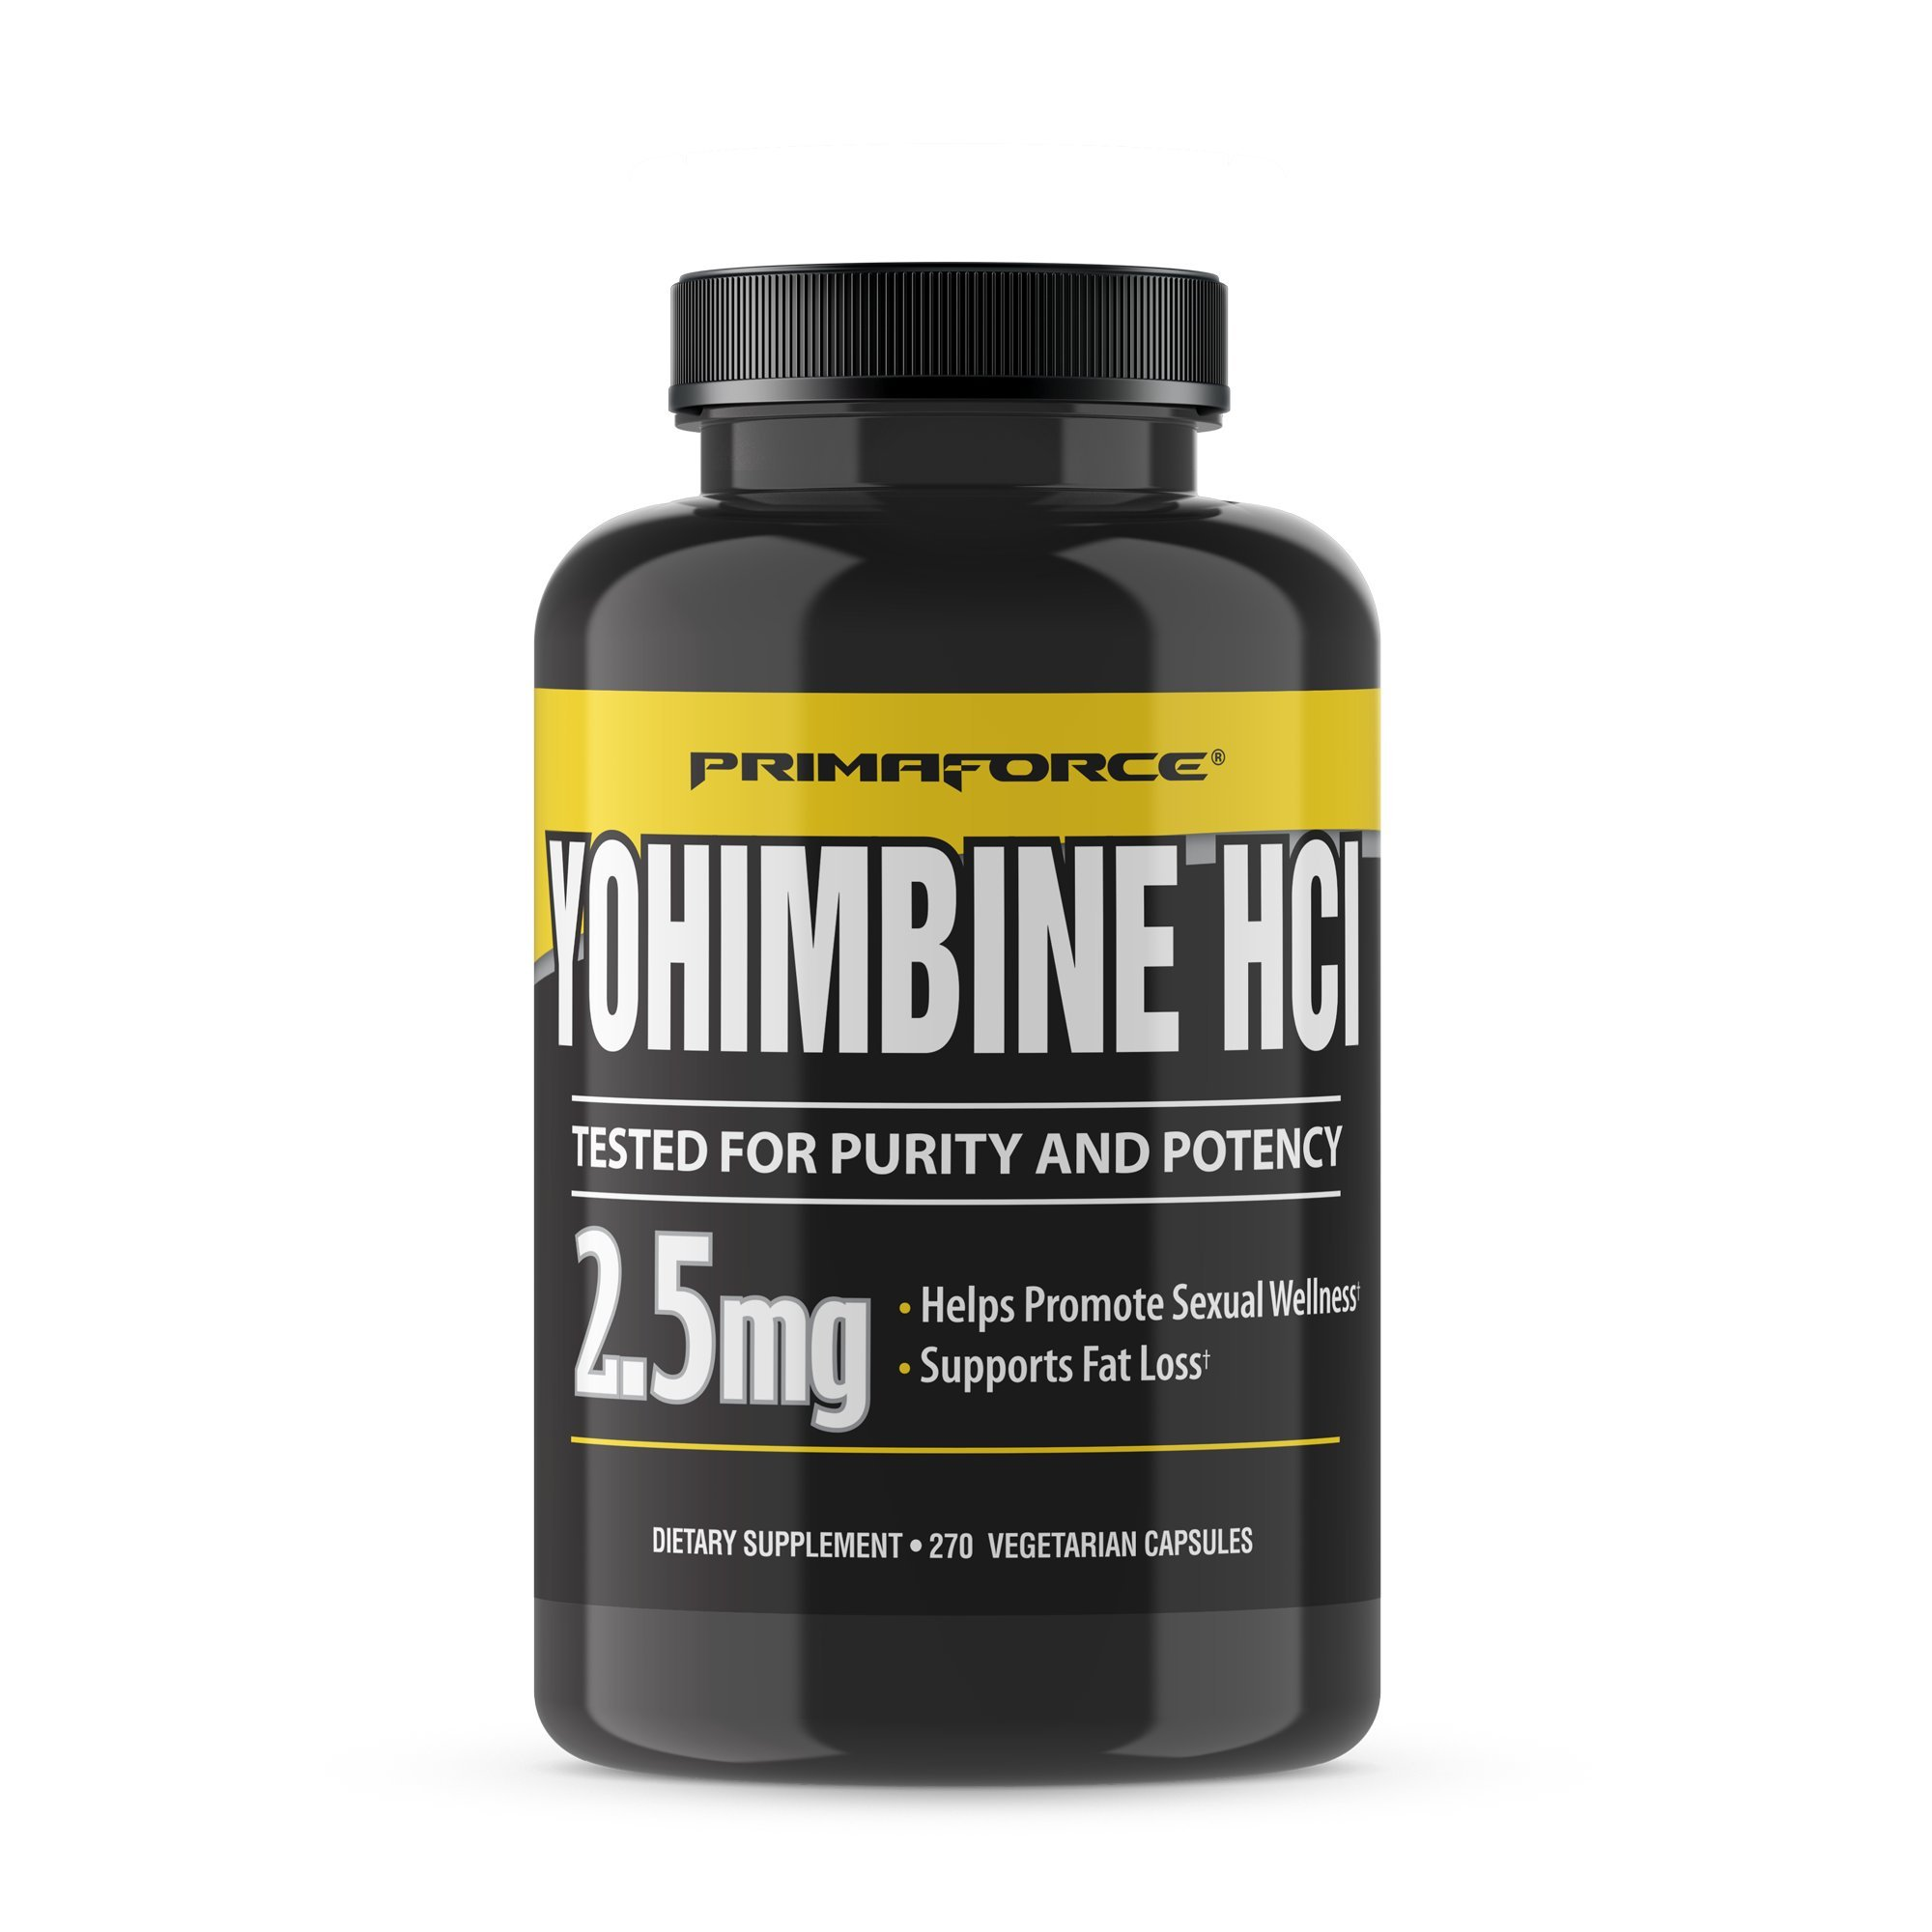 PrimaForce Yohimbine HCl, 270 Count 2.5mg Capsules - Weight Loss Supplement - Supports Fat Loss, Boosts Metabolism by Primaforce